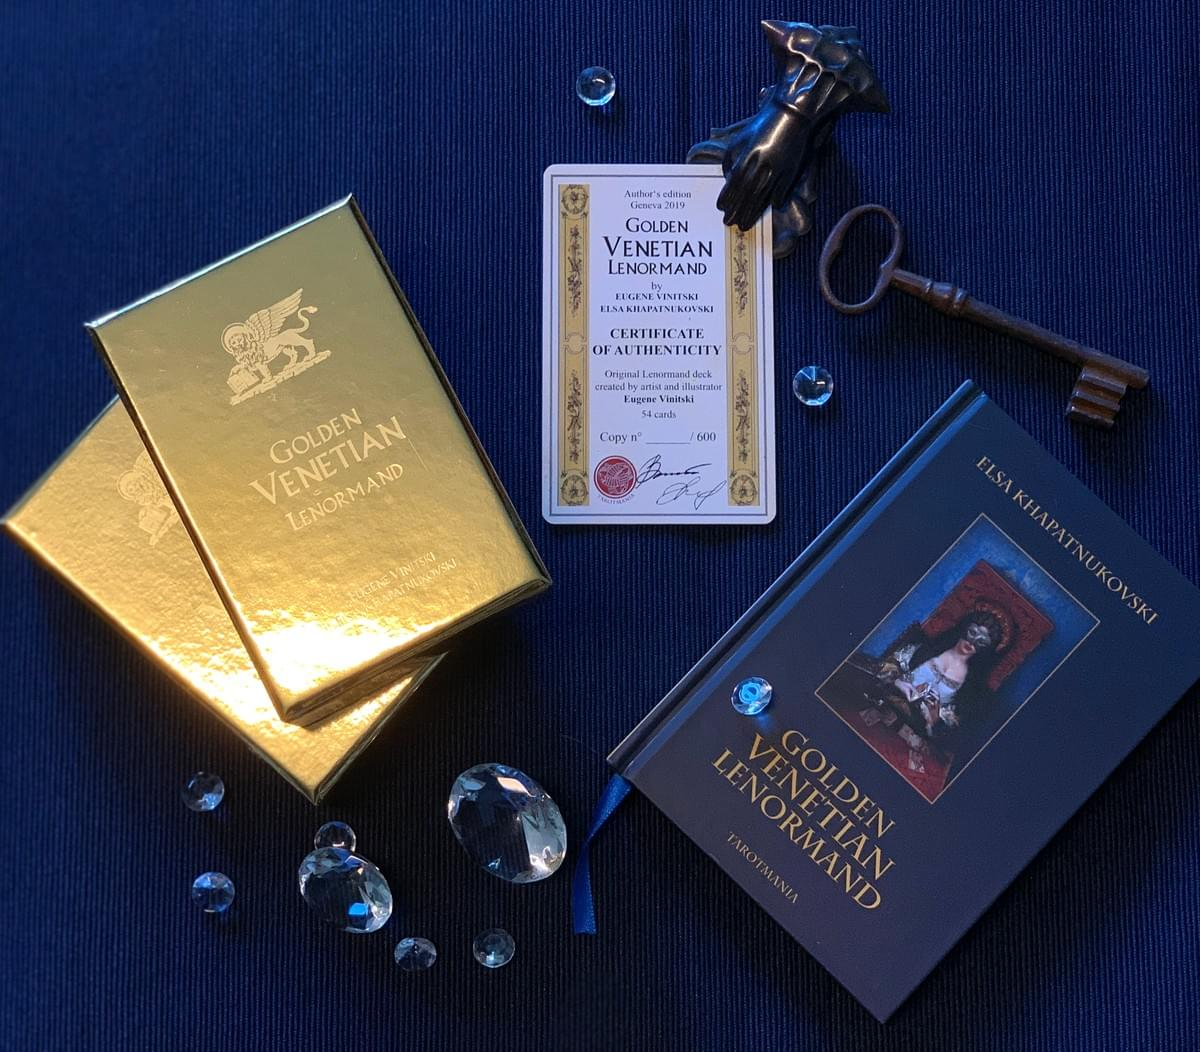 Golden Venetian Lenorman Oracle Divination Cards